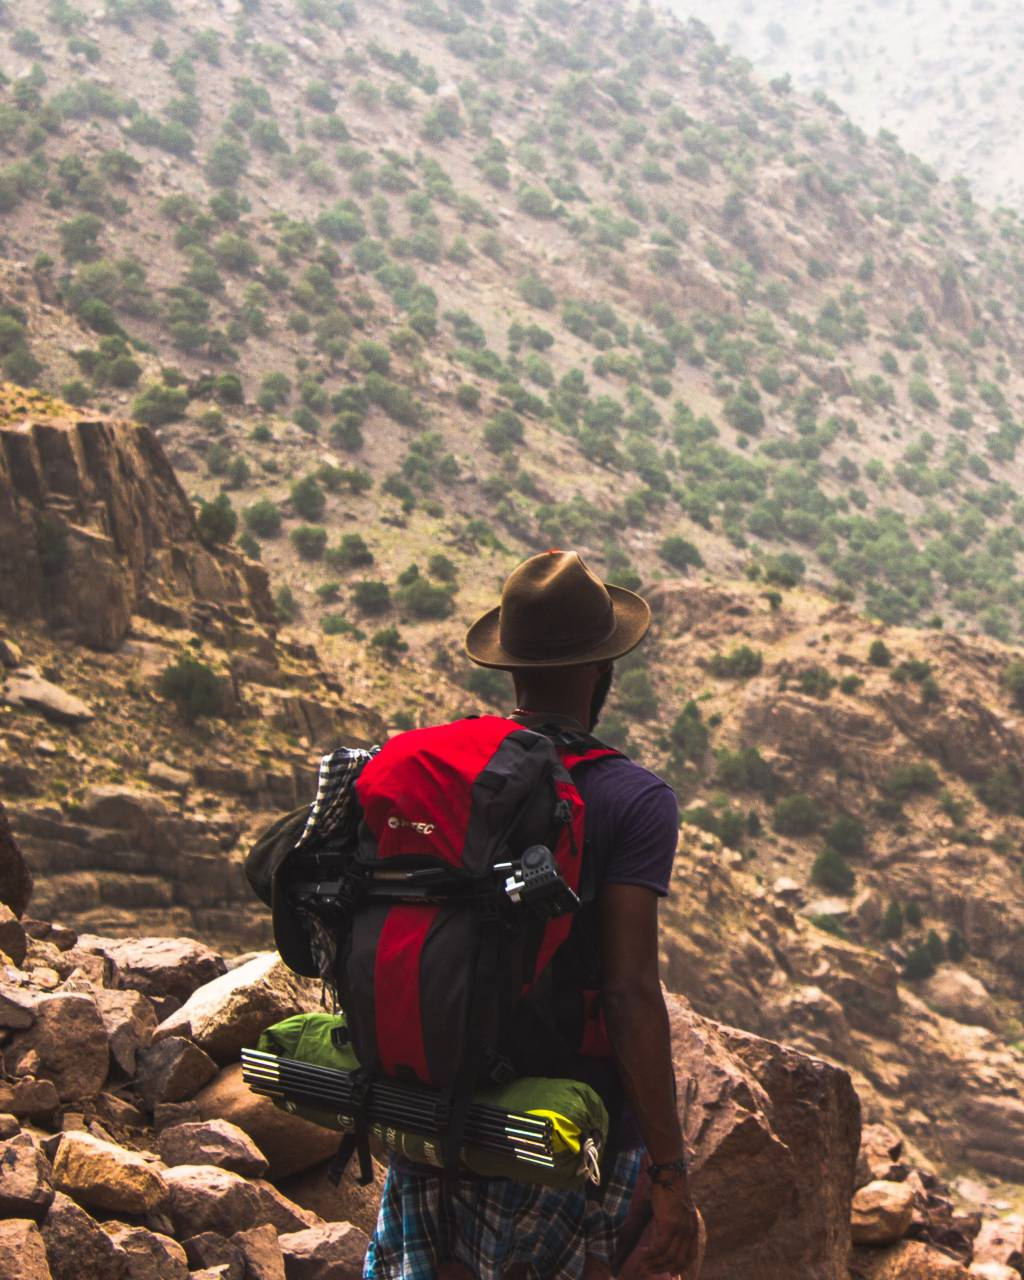 BIPOC hiking - racism in the outdoors